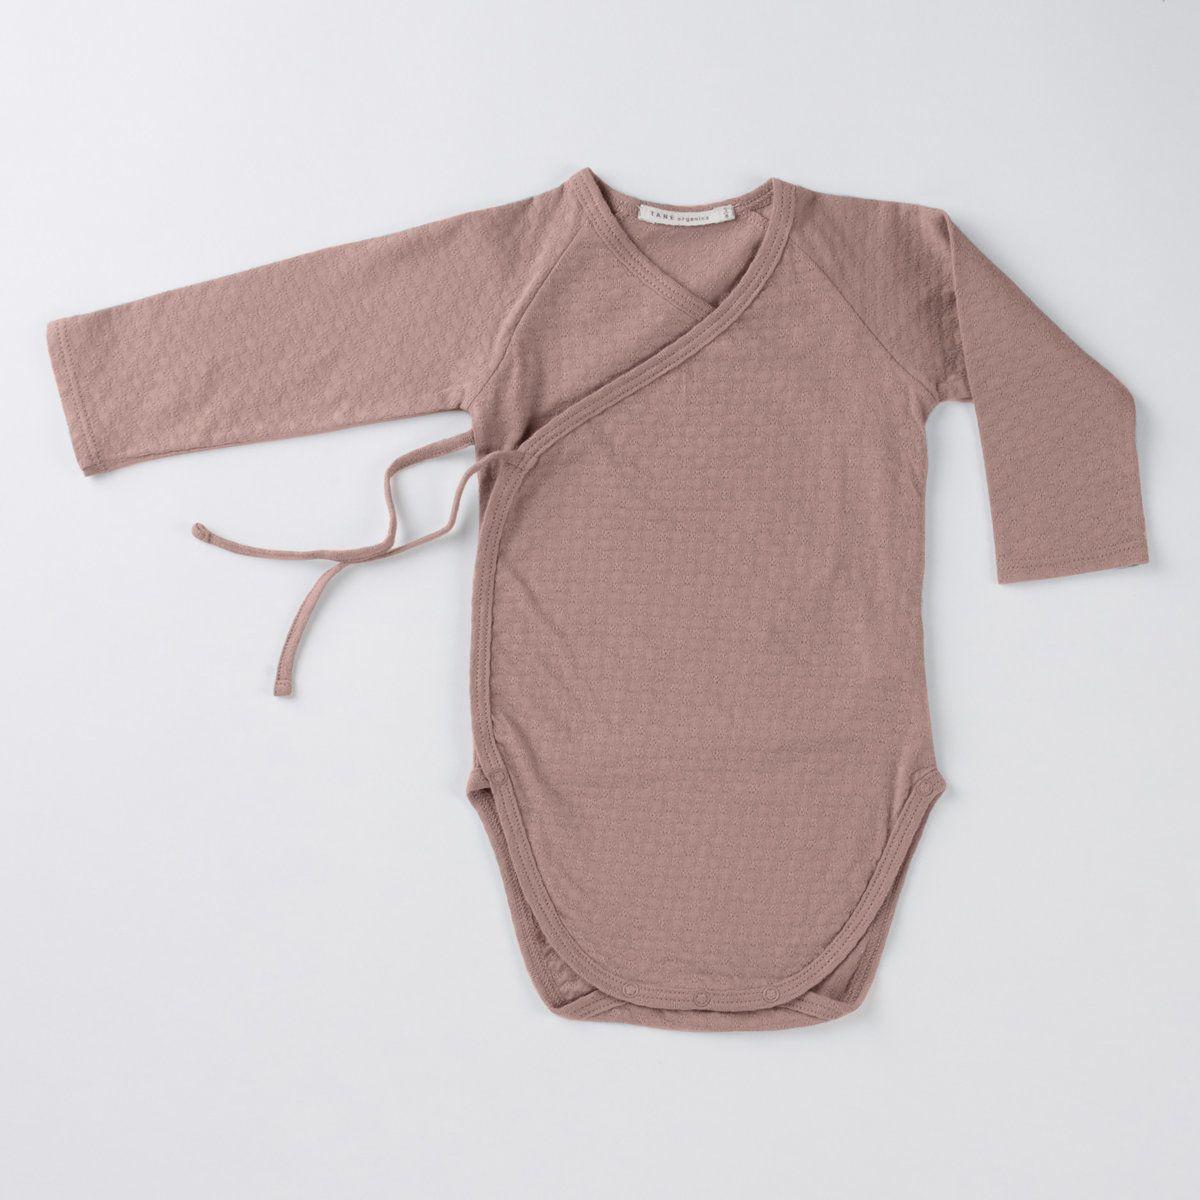 0b3d9b51bf34 Luxurious Organic Infant and Baby Clothing  onesies   Pointelle Kimono  Onesie